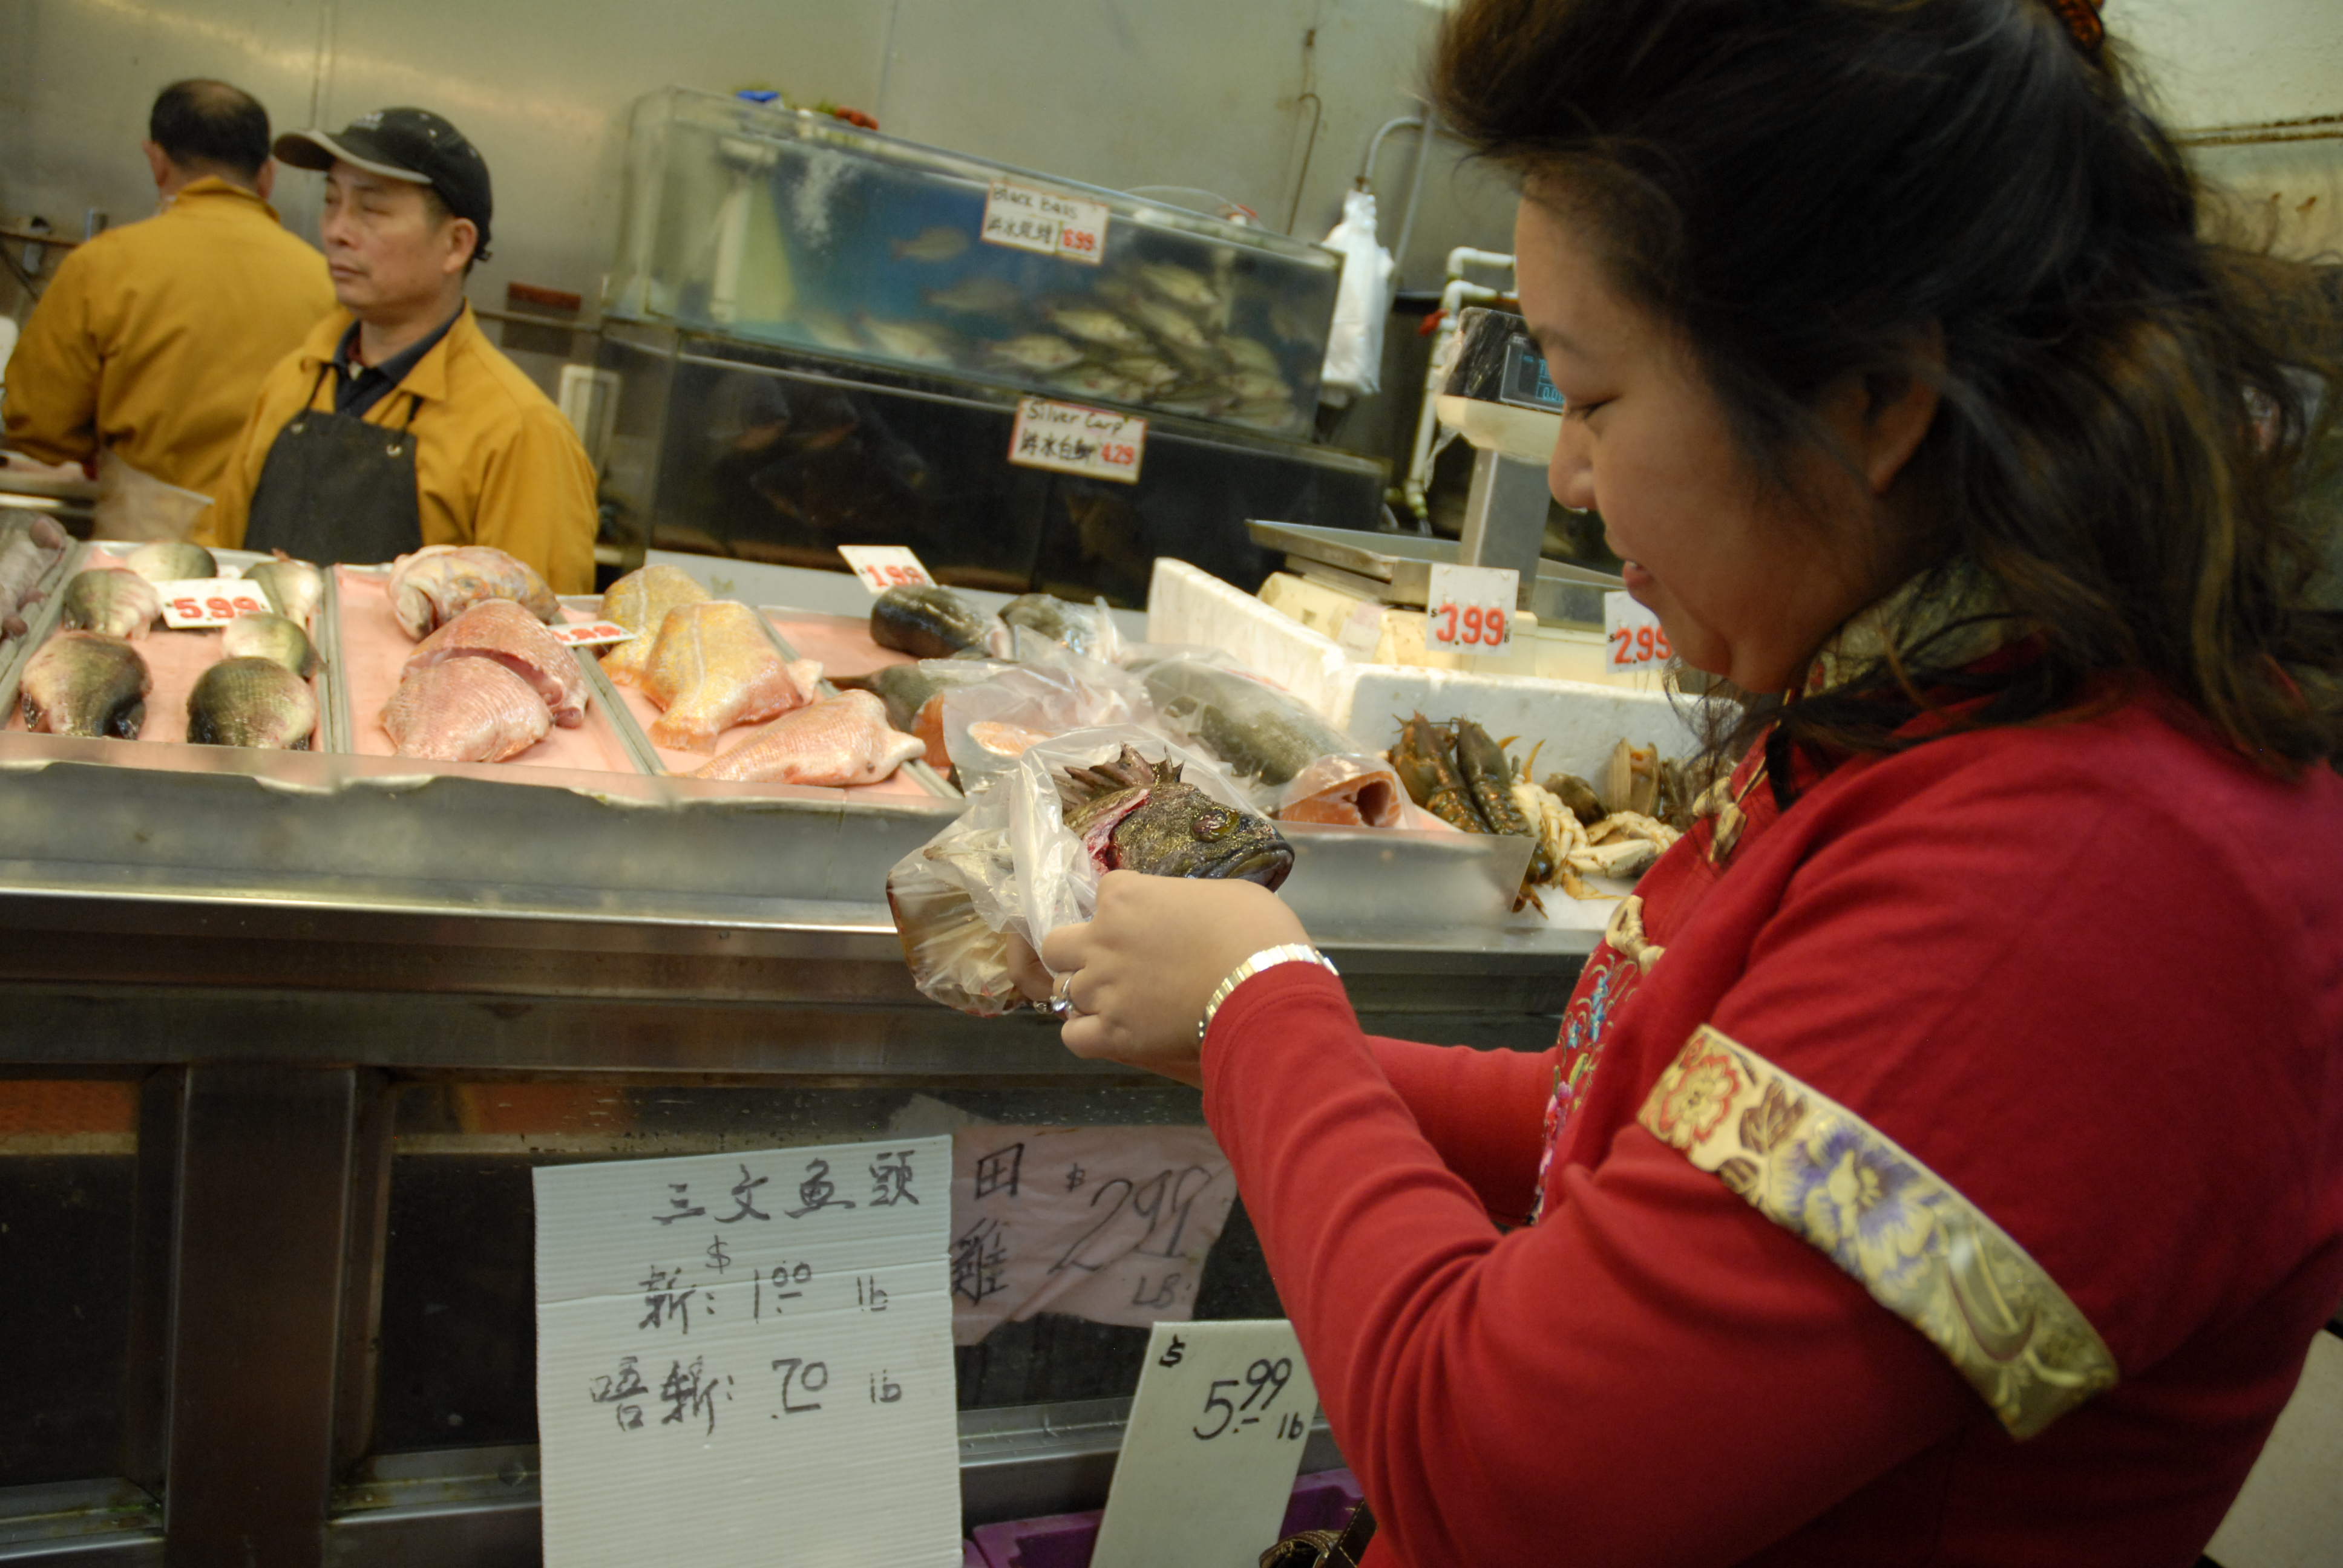 Lisa Li examines Gopher fish at E&F Market in Oakland Chinatown. Photo: Wendy Goodfriend